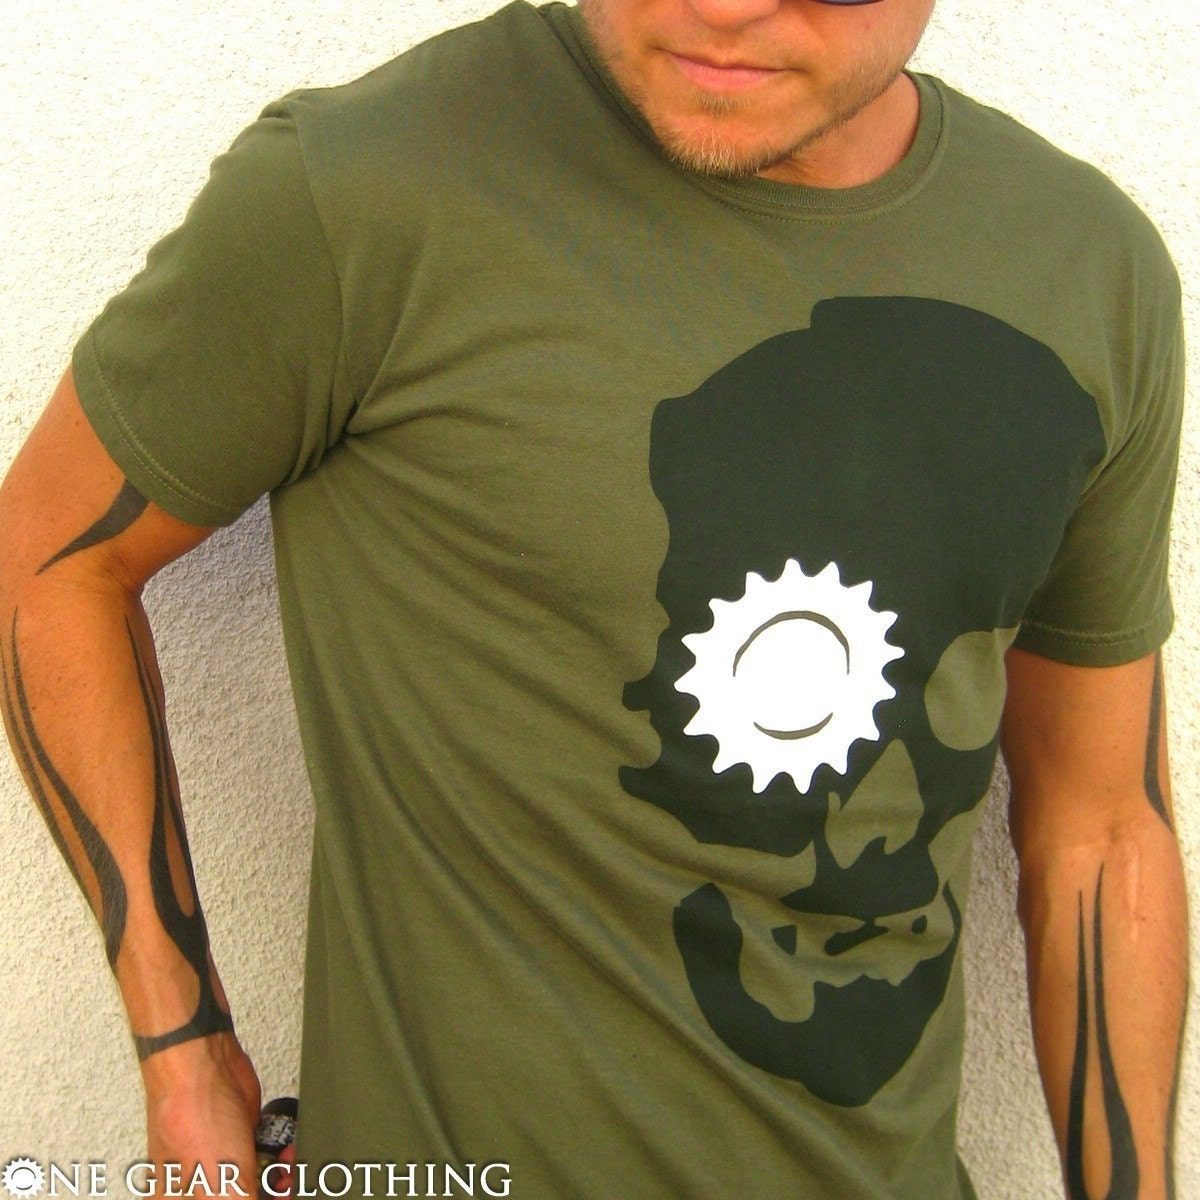 Ghost Roger - Skull with gear eye socket tee shirt - Gray and white on army green - Available in Mens / Unisex S, M, L, XL